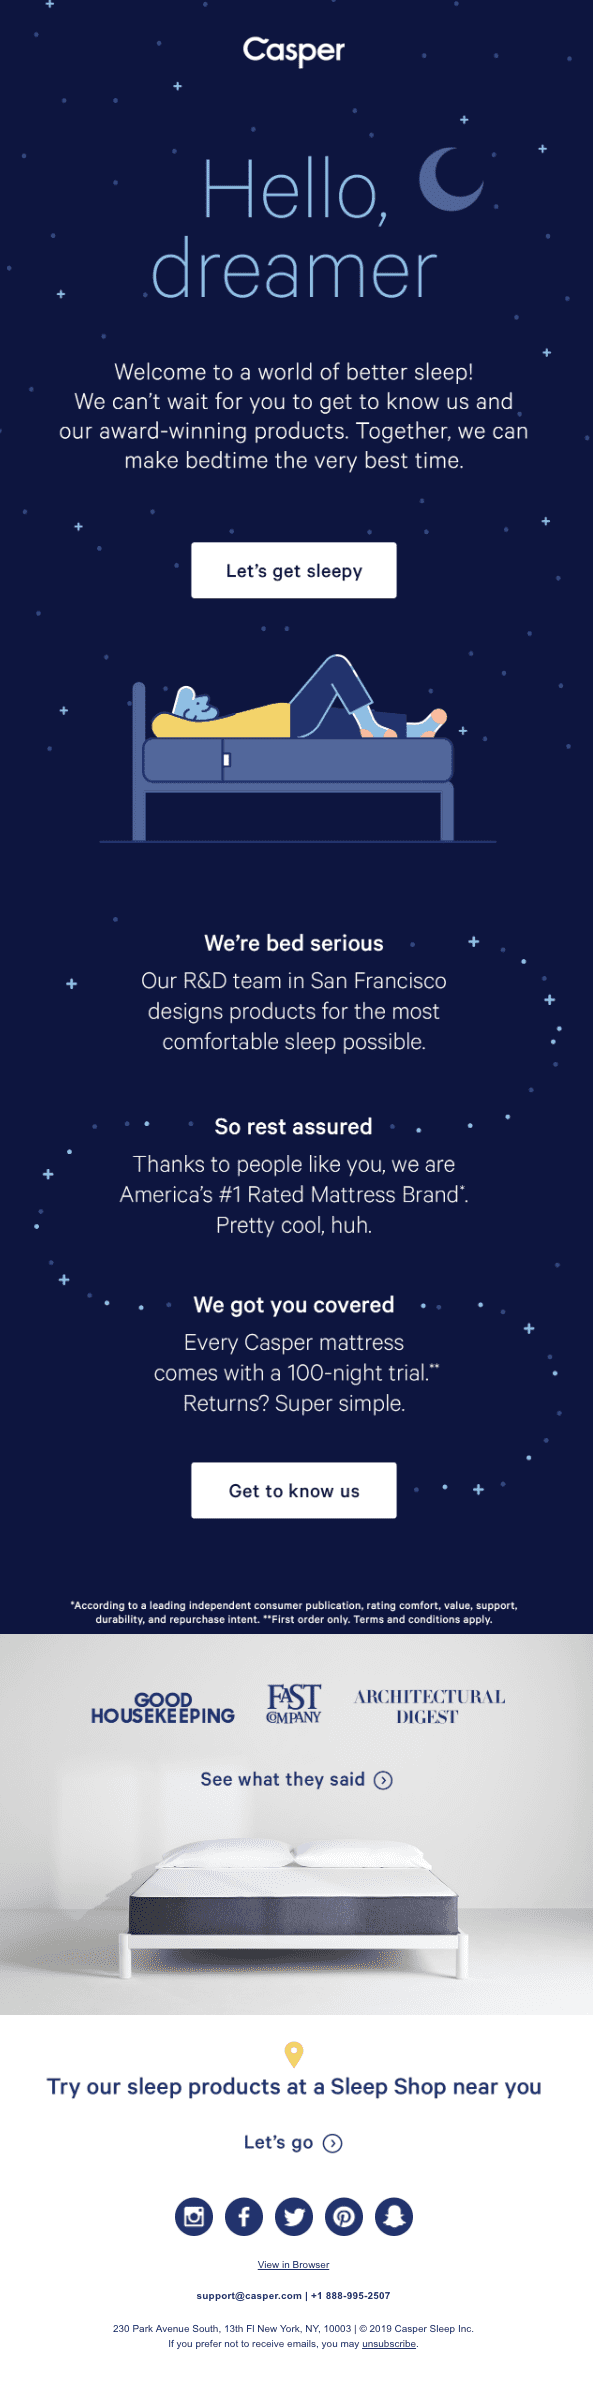 welcome-email-from-casper